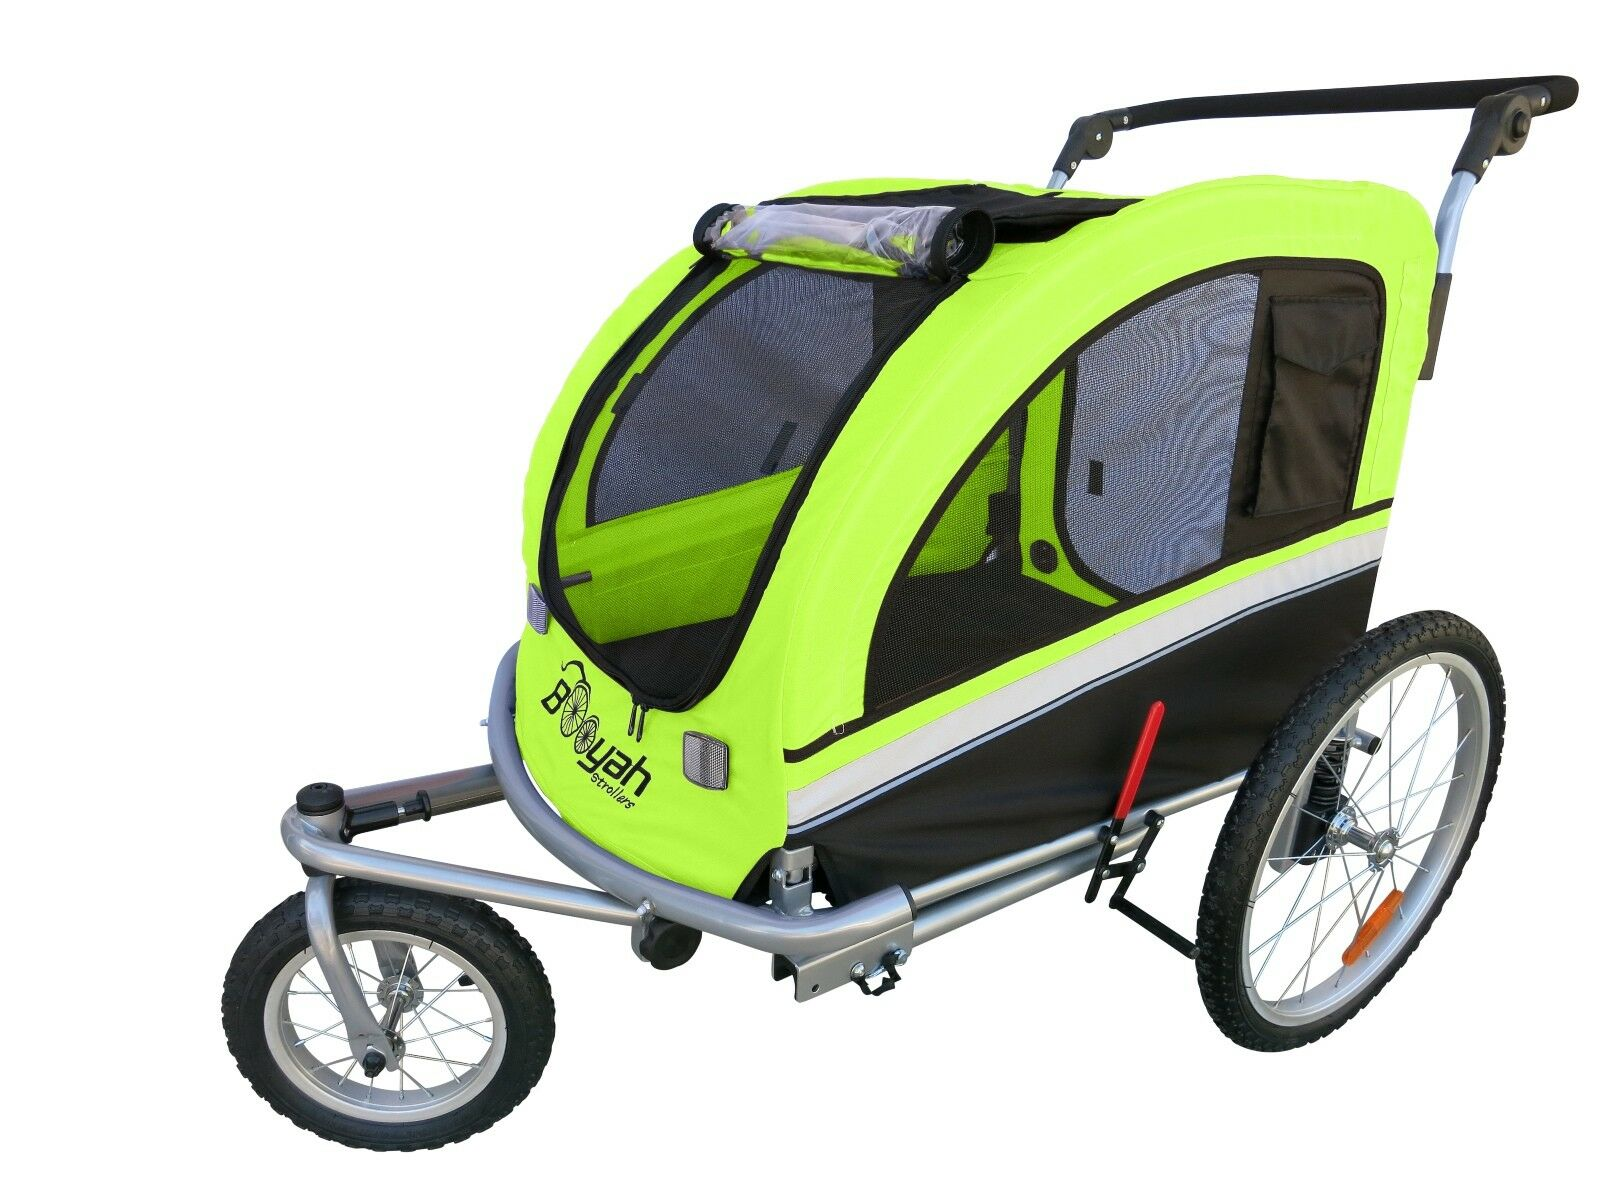 benvenuto a scegliere MB MB MB Booyah Large Pet Dog stroller and Bike Bicycle Trailer with Suspension verde  sconti e altro